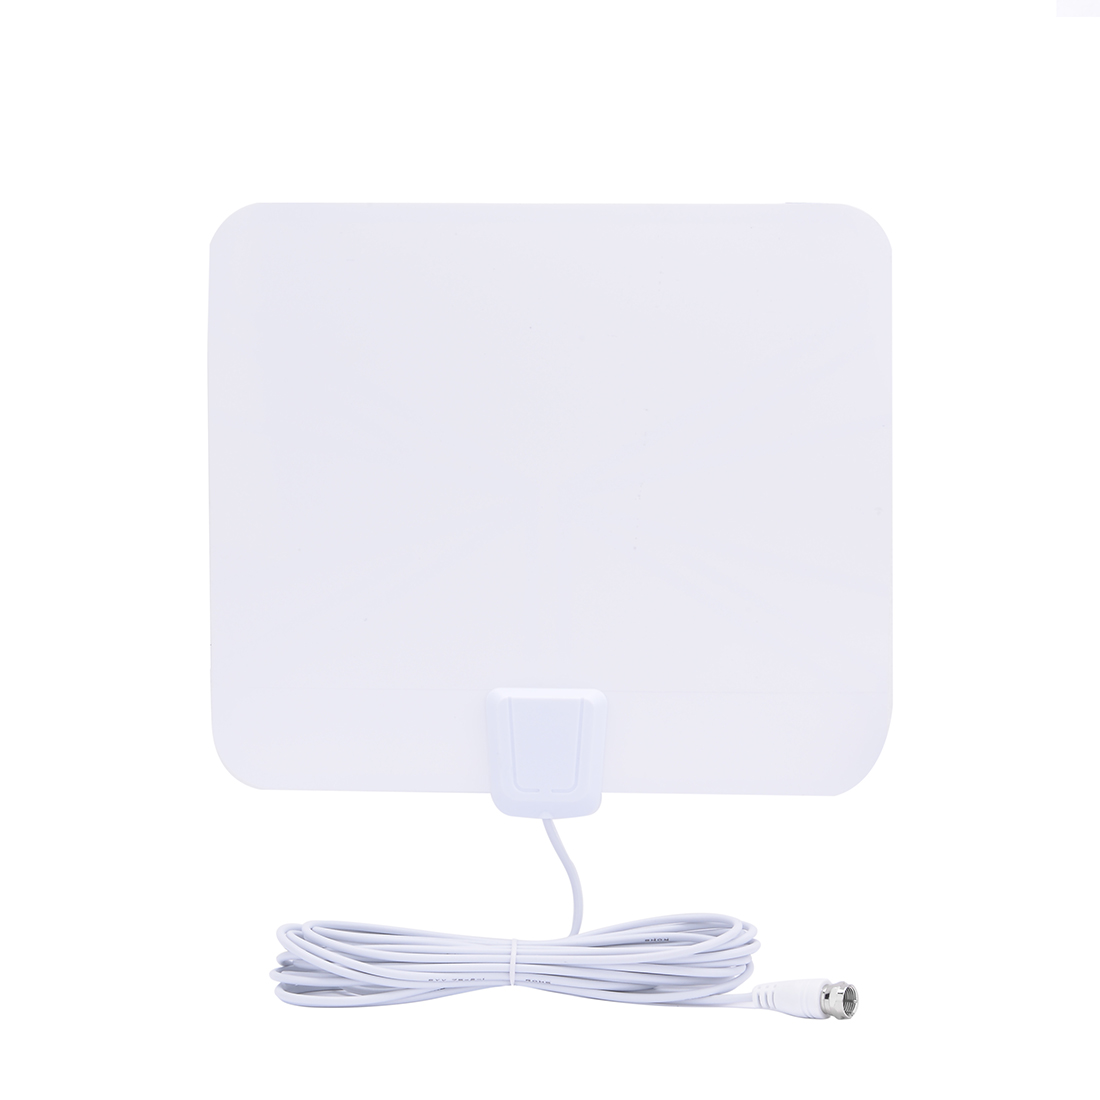 25 Mile Range Indoor Digital HDTV Antenna with 16 FT Long Cable